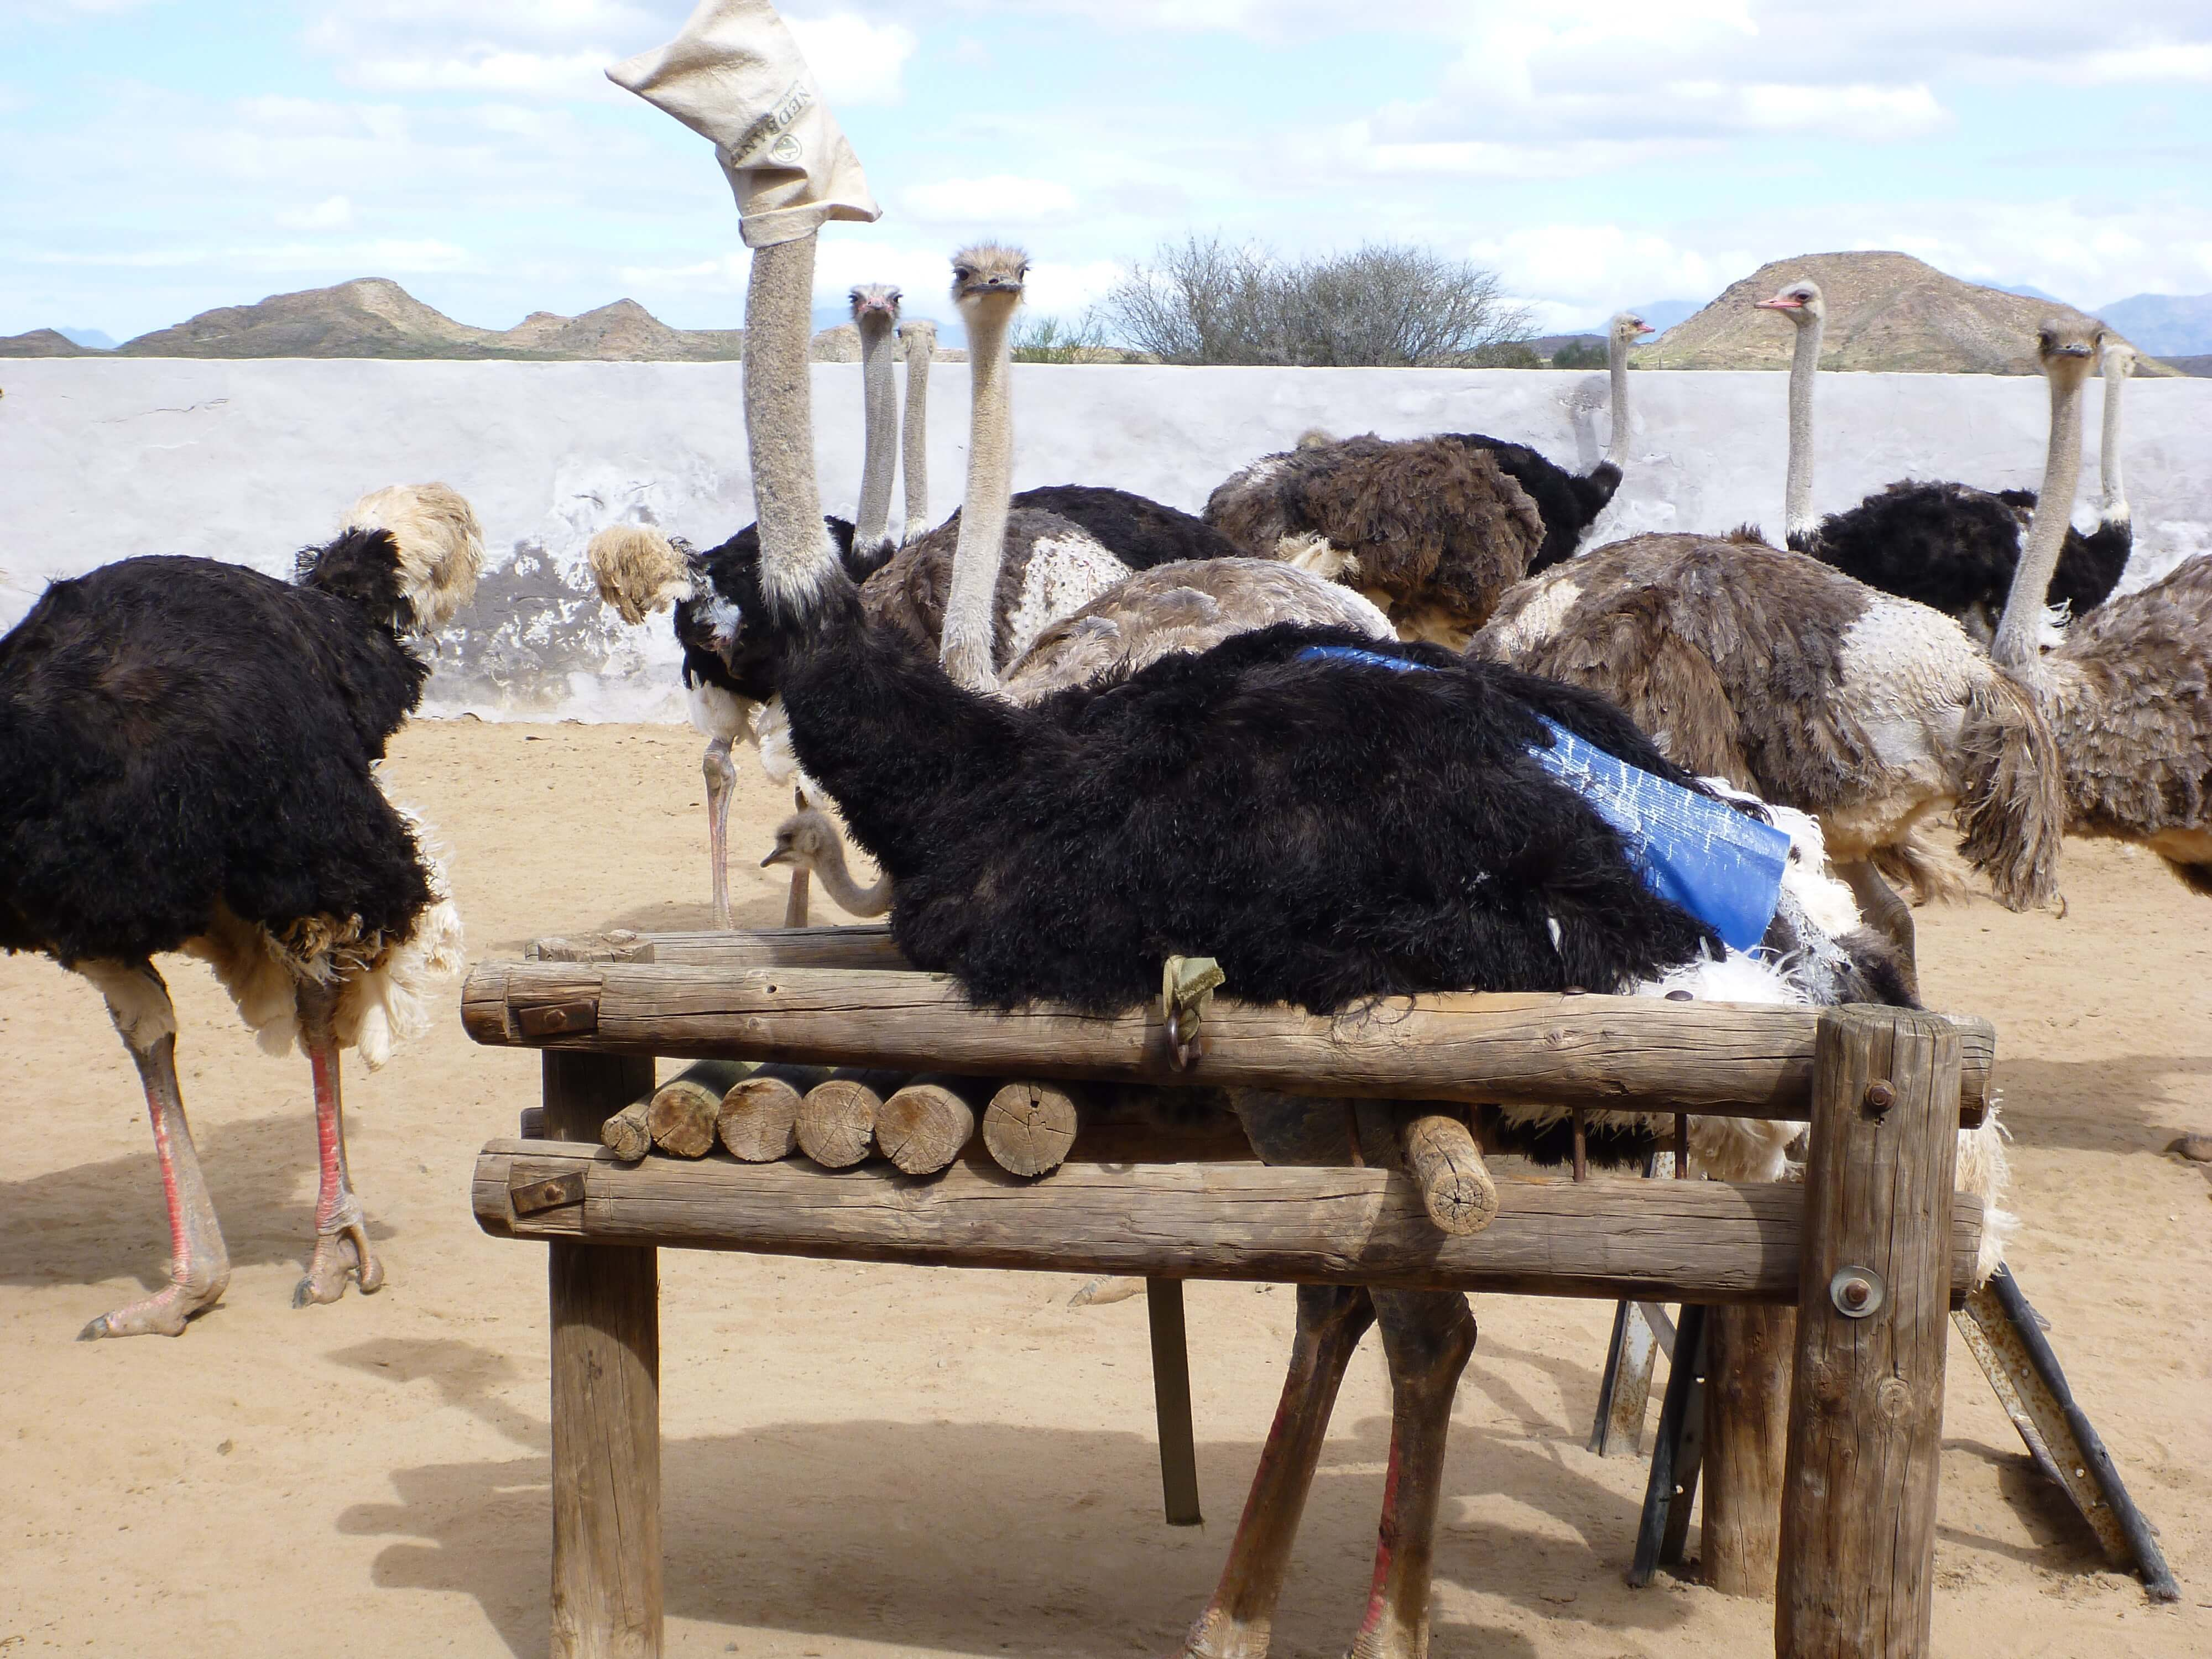 Ostrich-in-Restraint-Device-for-Plucking-